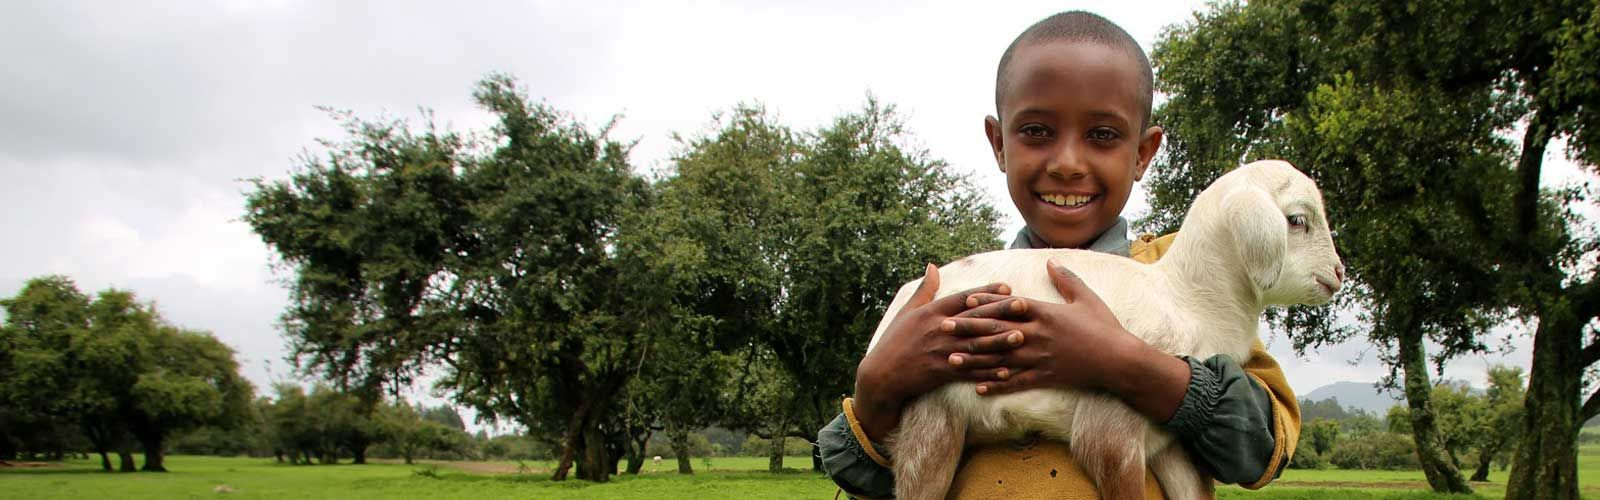 A girl in Ethiopia holding a sheep